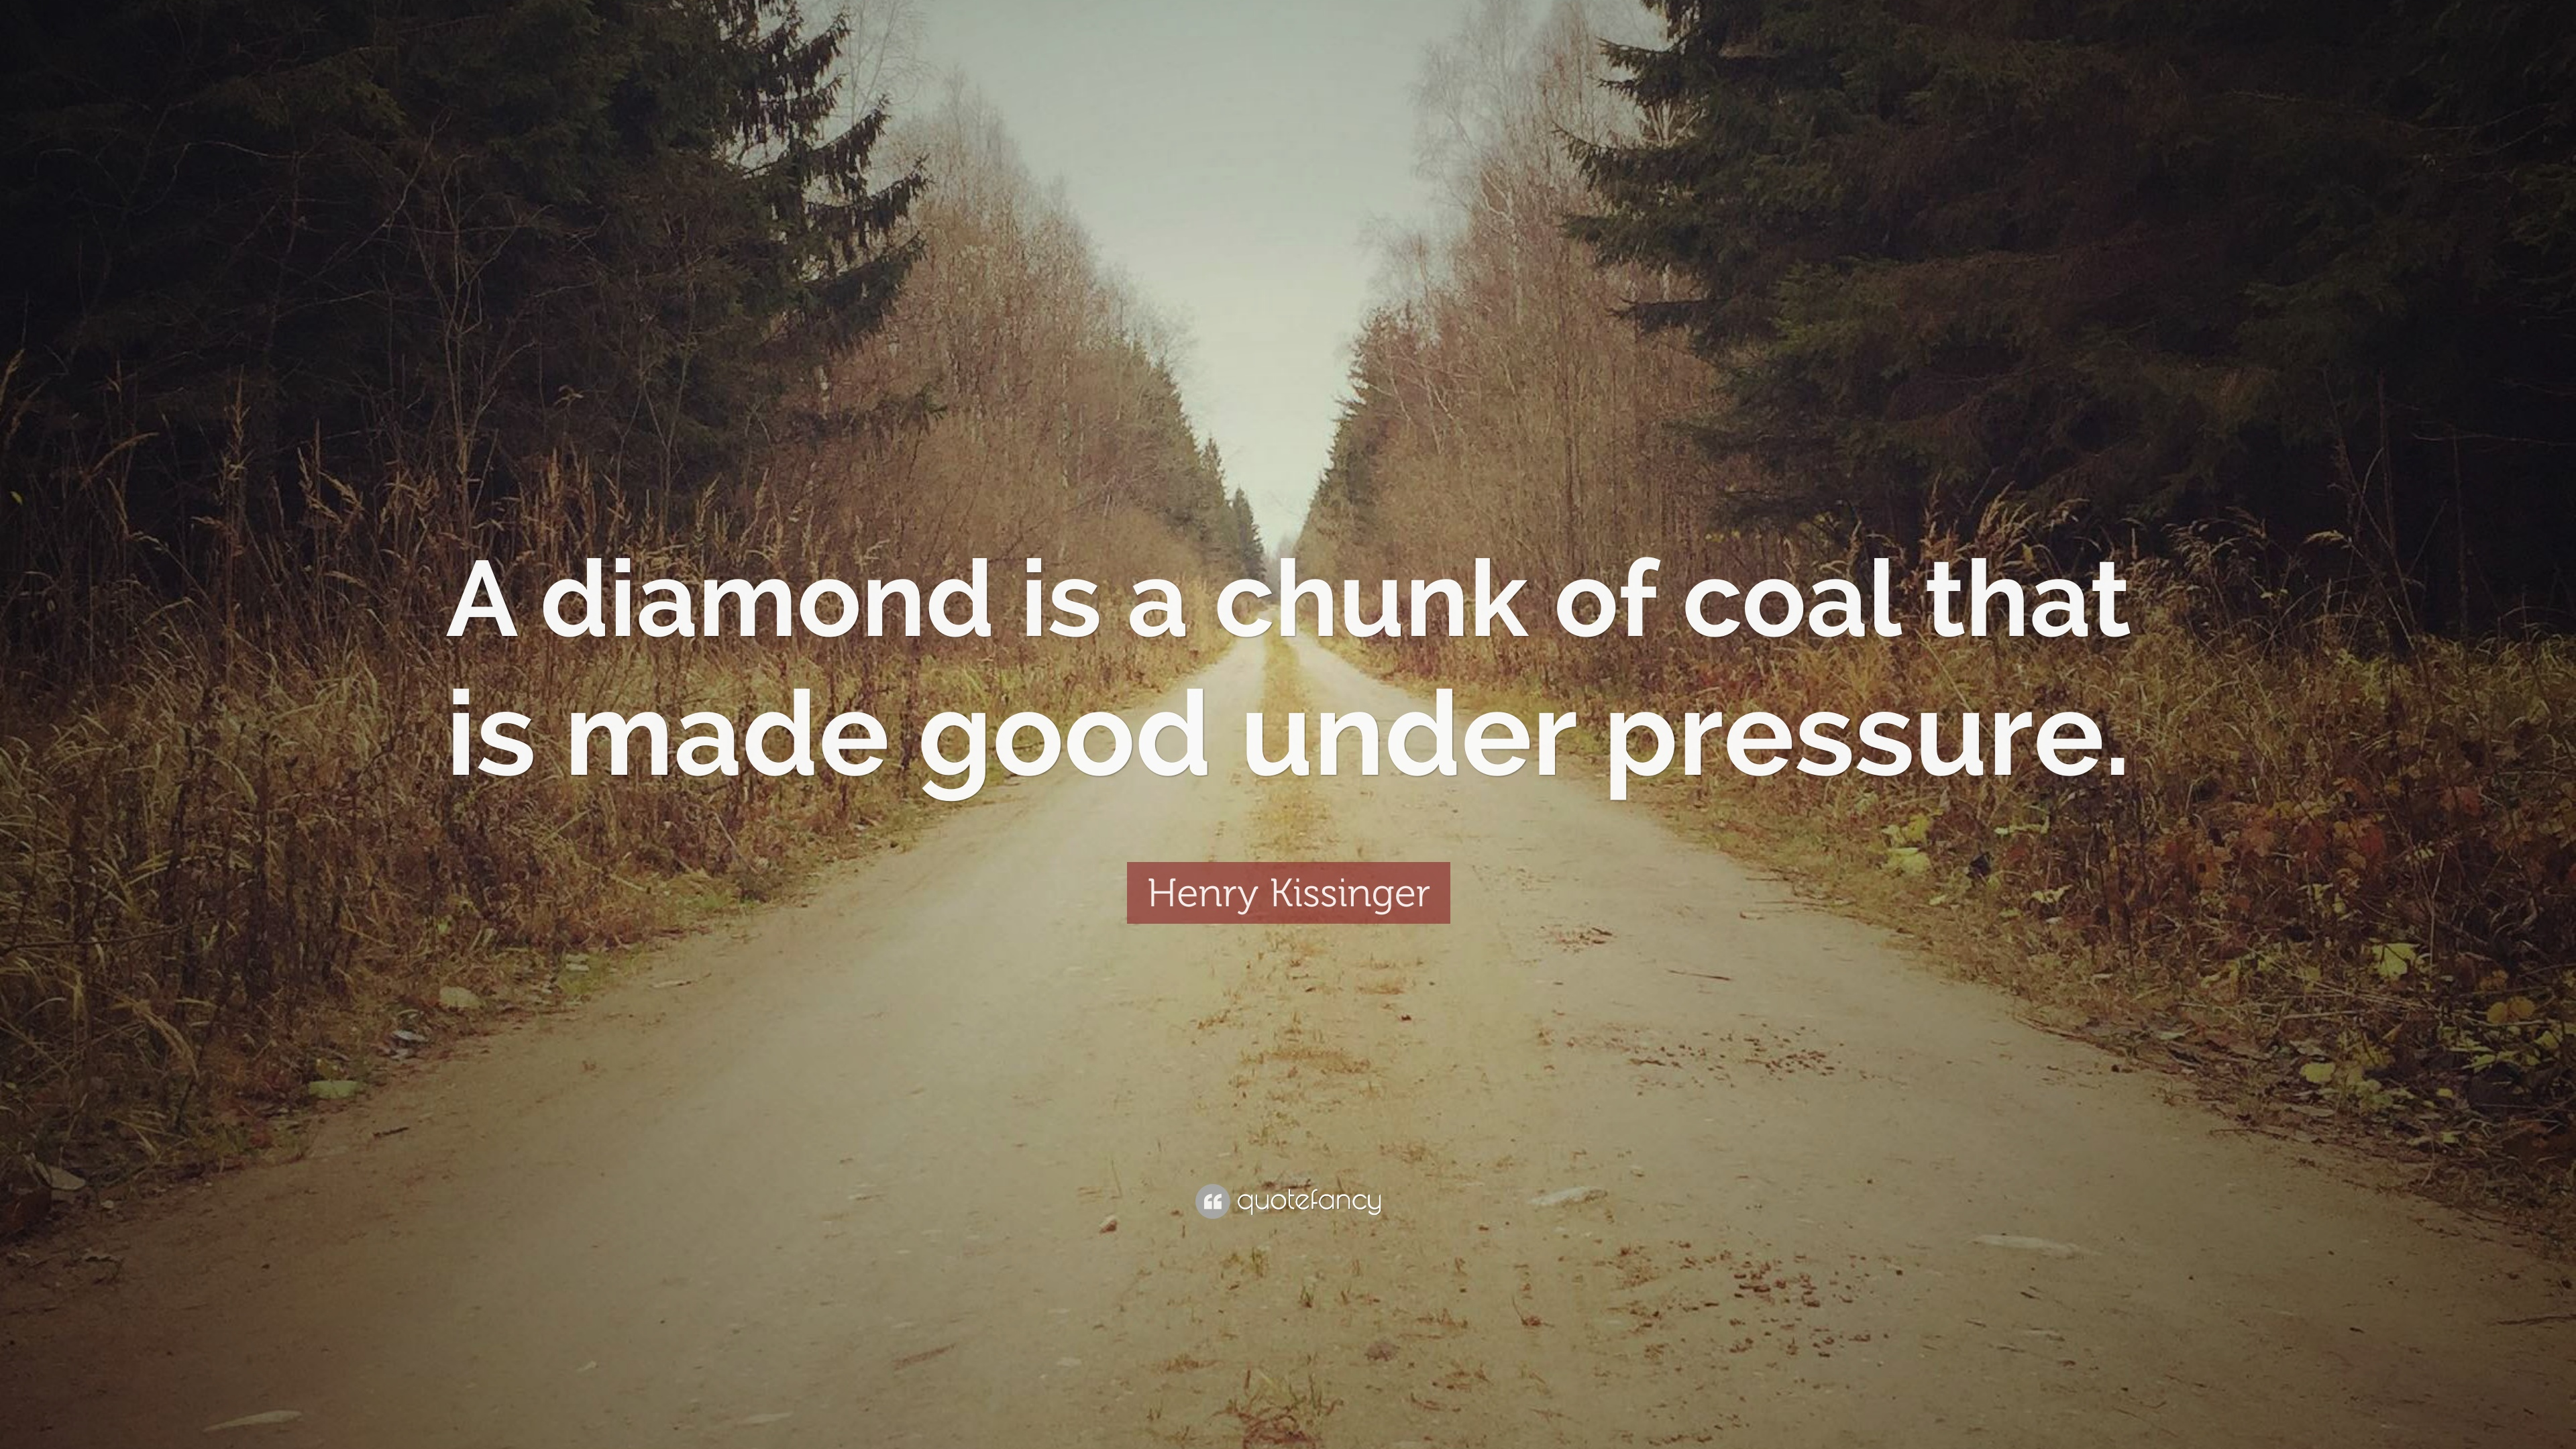 that of diamond good pressure under coal henry kissinger made a is chunk quote